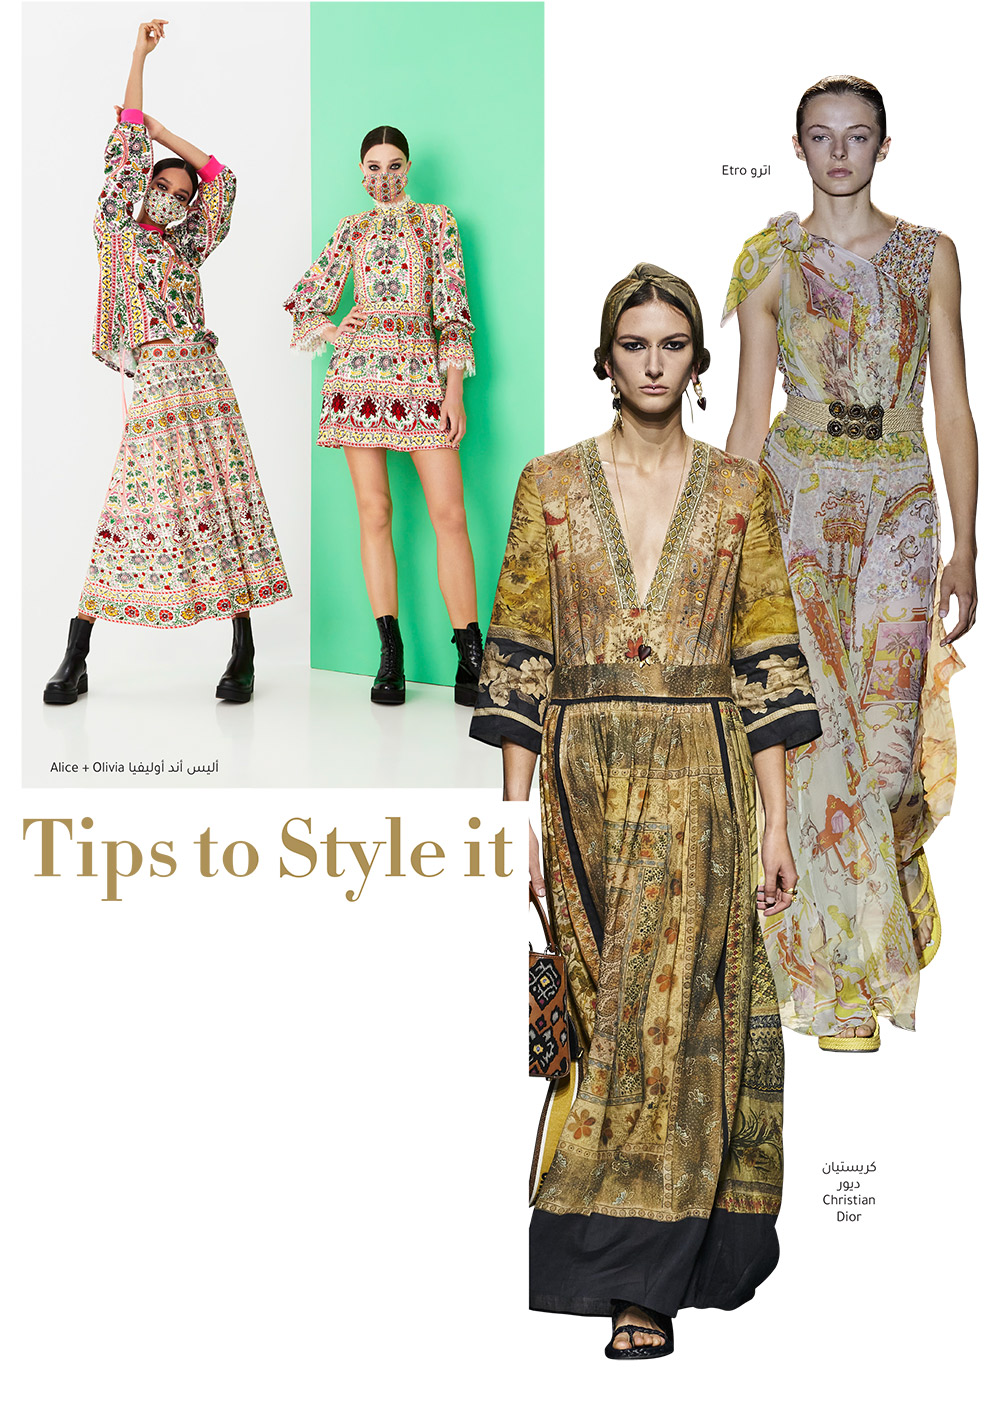 Tips to Style it